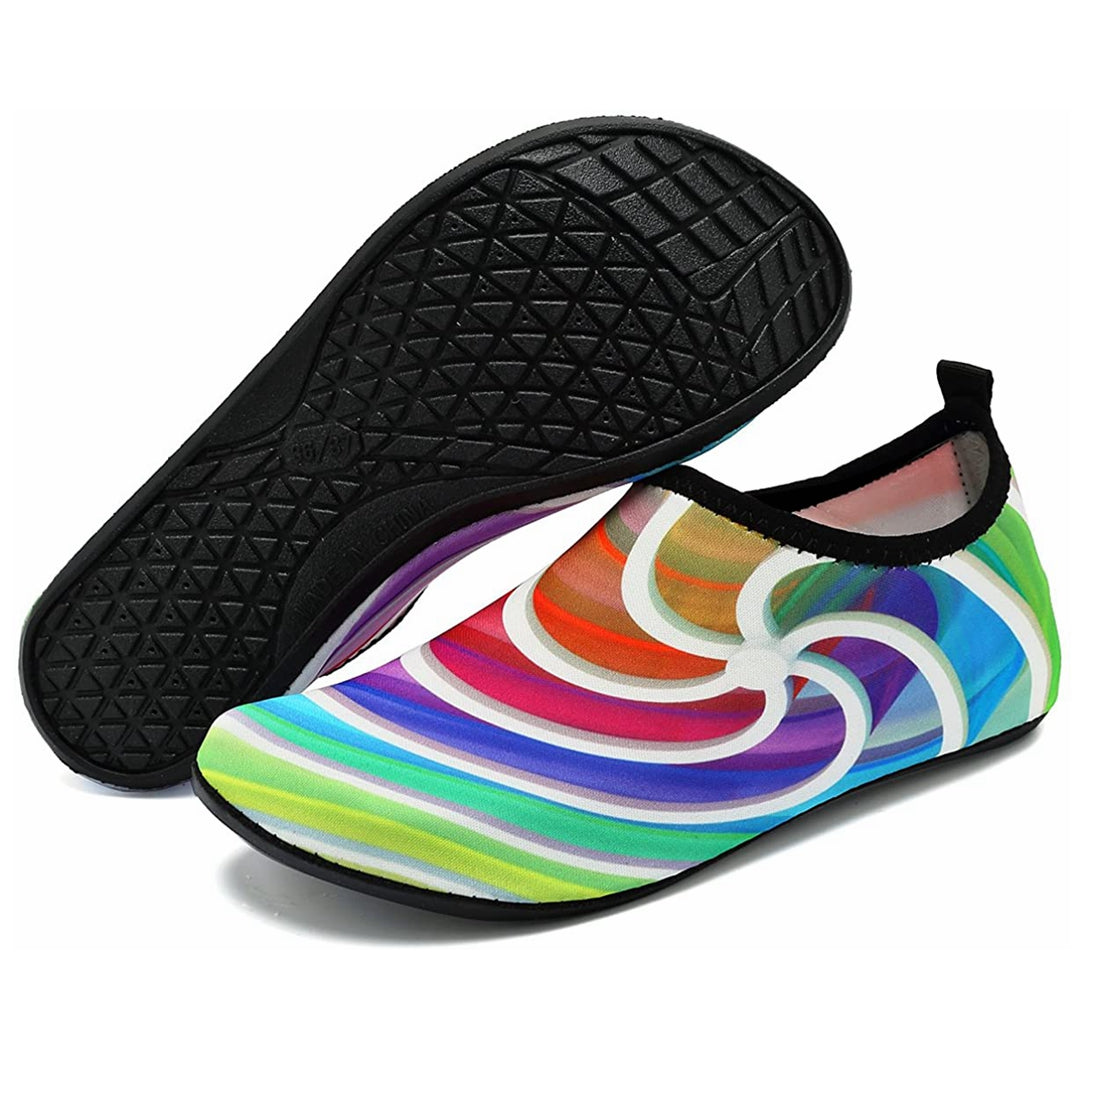 VIFUUR Water Shoes for Men Women